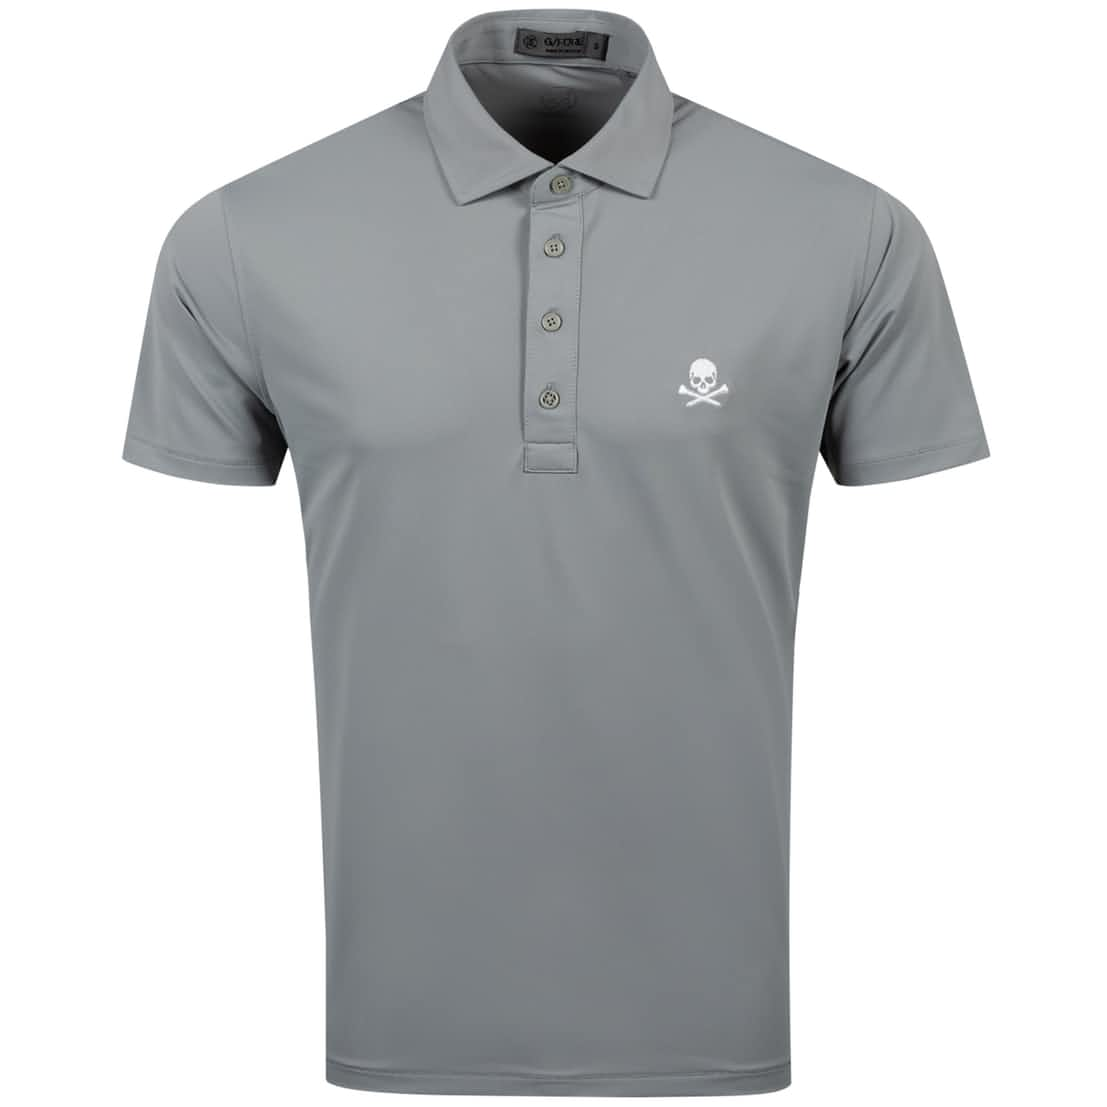 x TRENDYGOLF Skull Pique Polo Monument - AW20